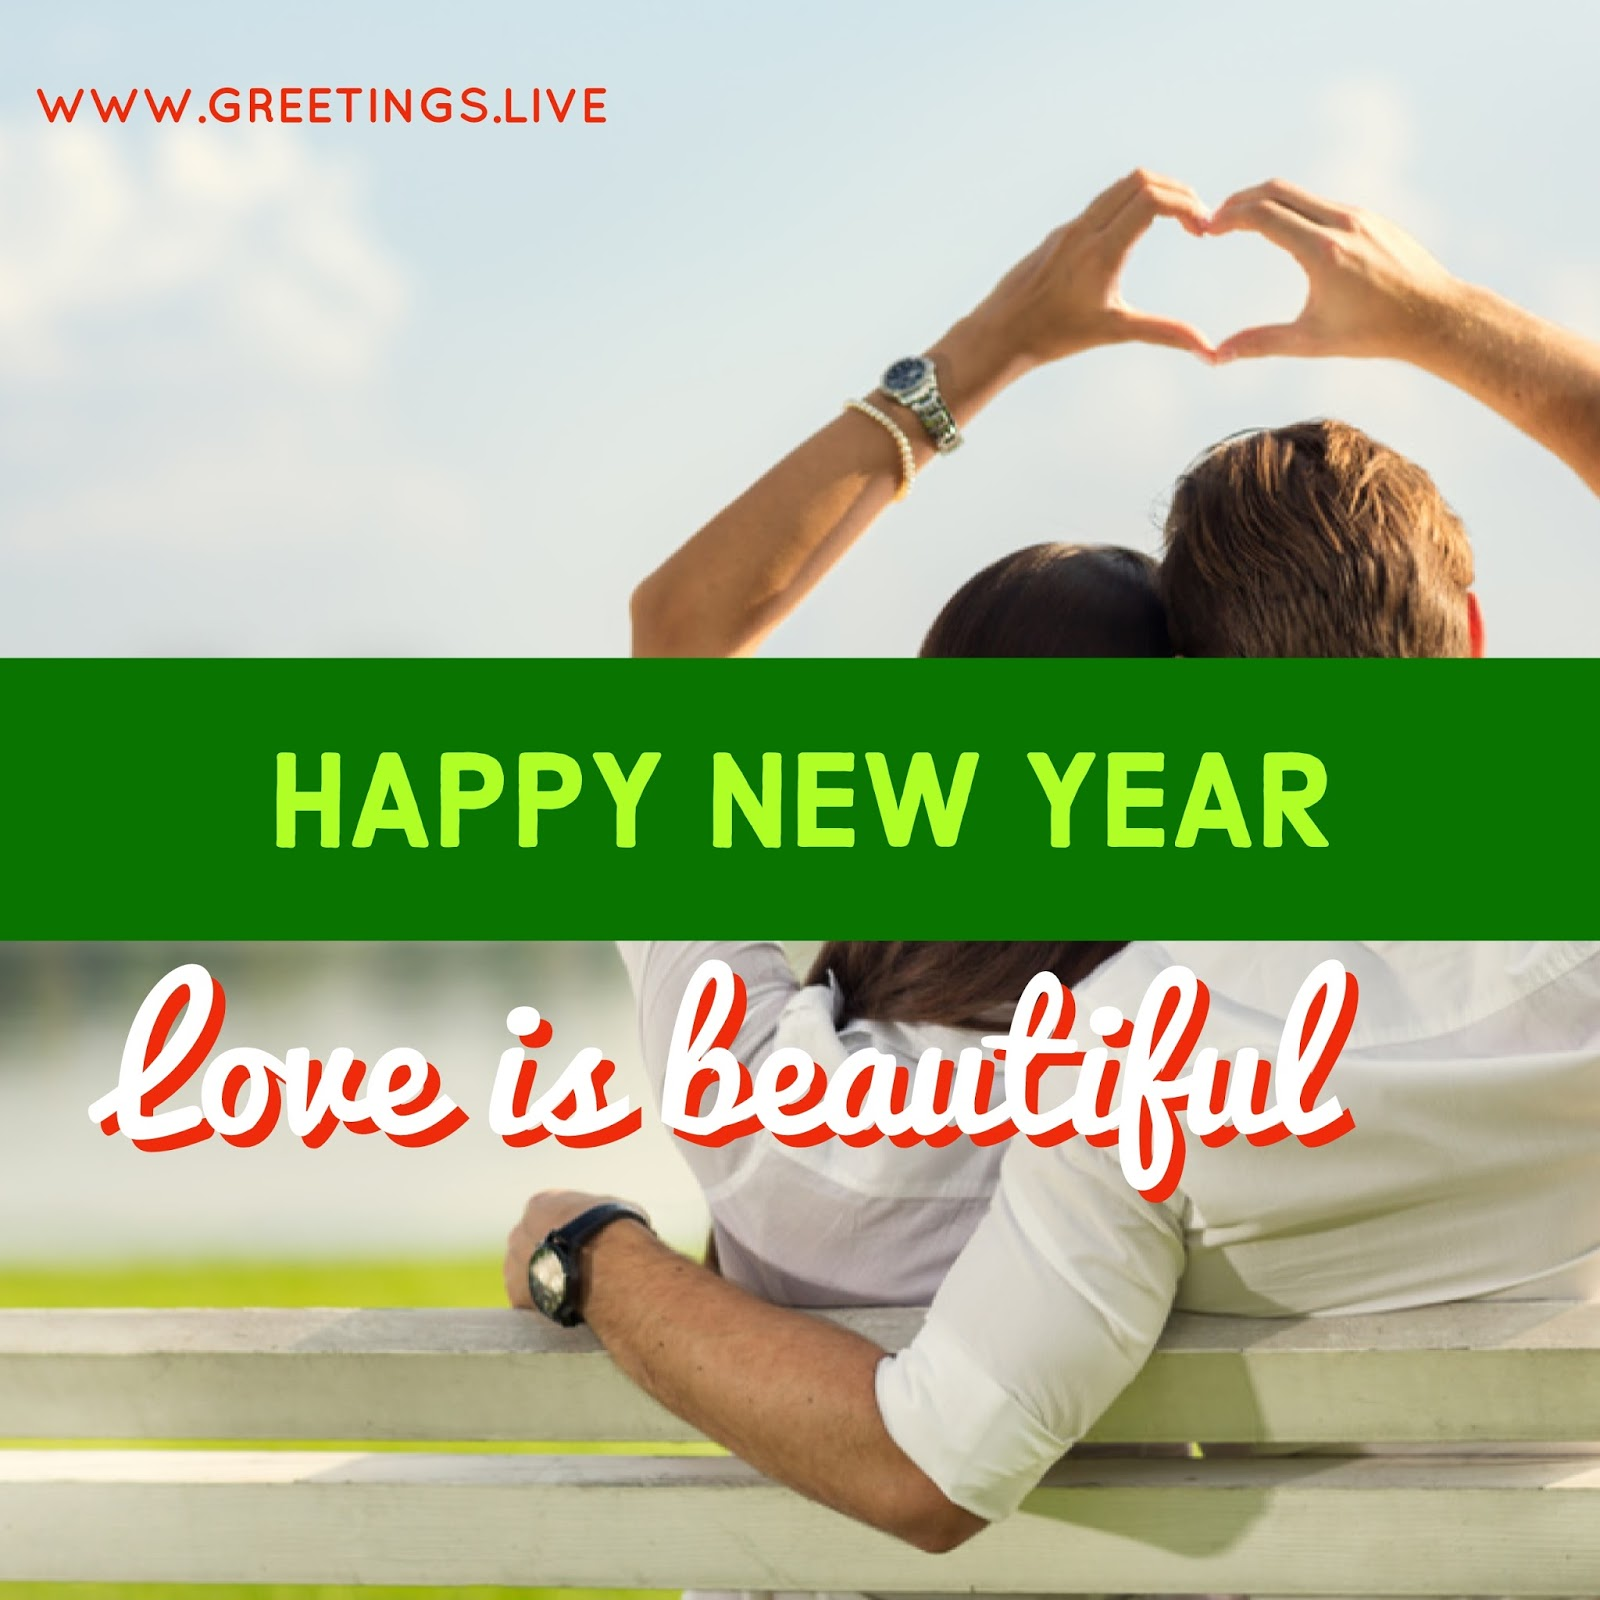 2018 New Year Wishes Greetings Love Greetings On Happy New Year